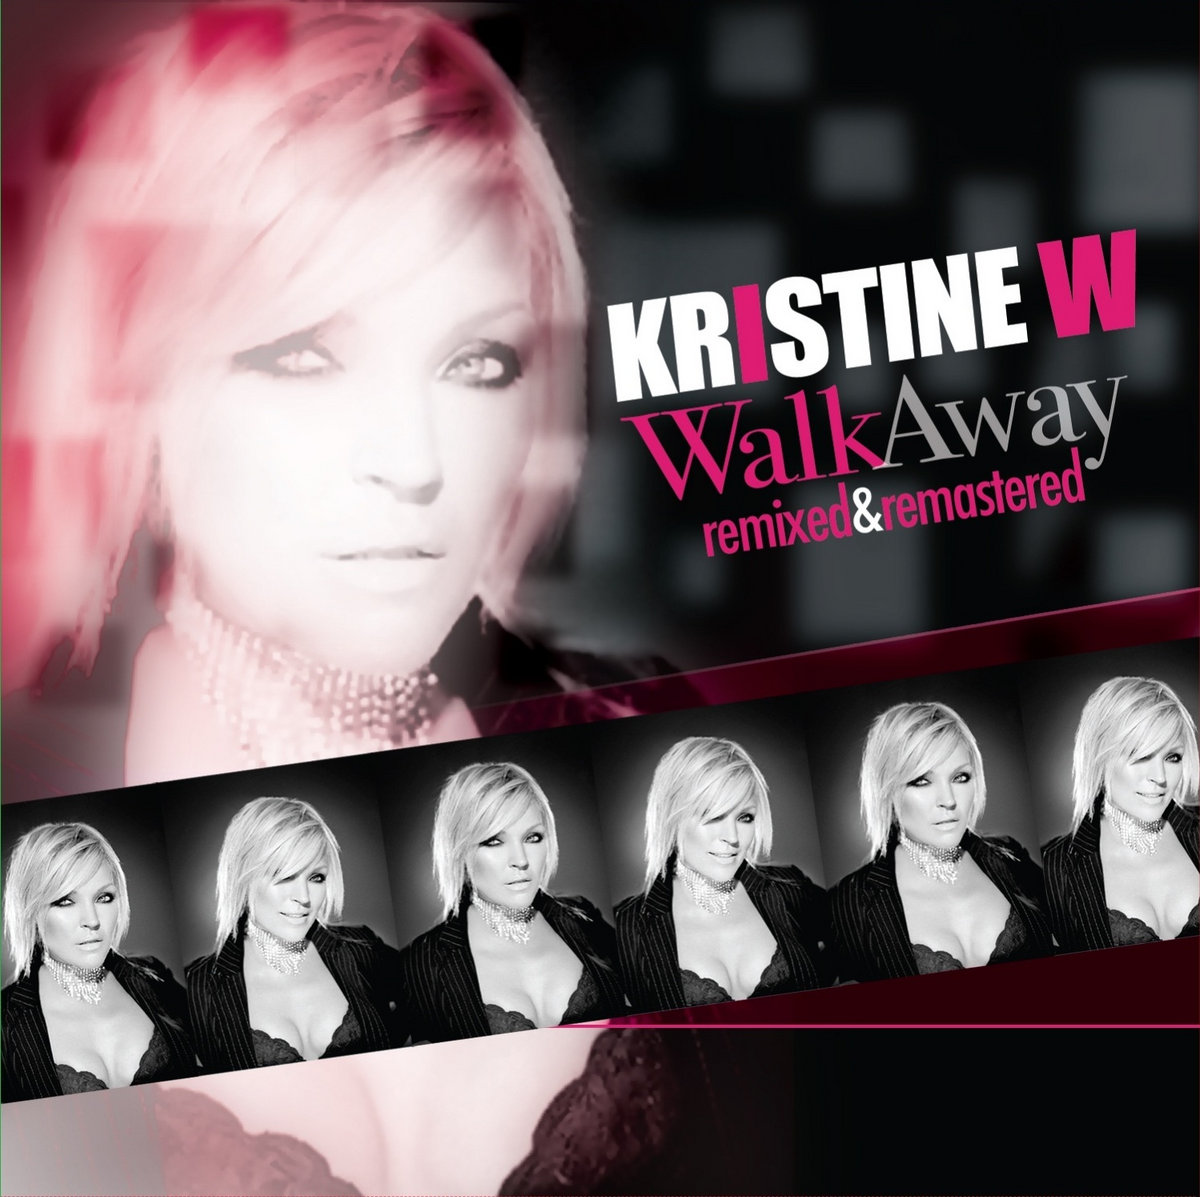 Tony Moran featuring Kristine W - Walk Away (studio acapella)